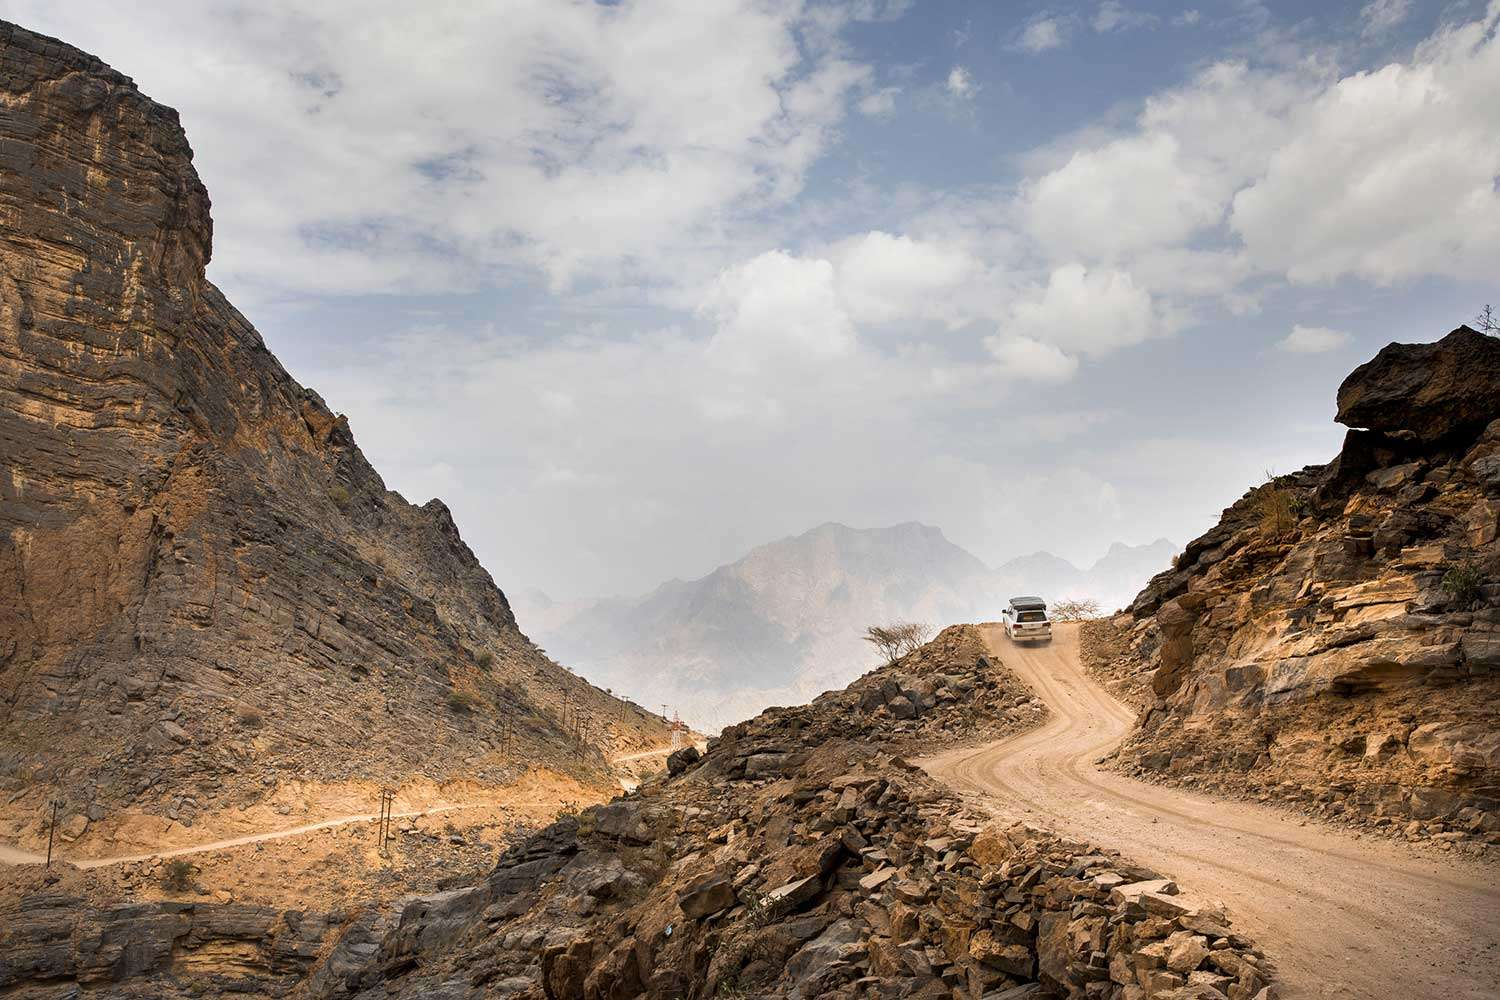 4x4 rental & tours - the best thing to do in Omann